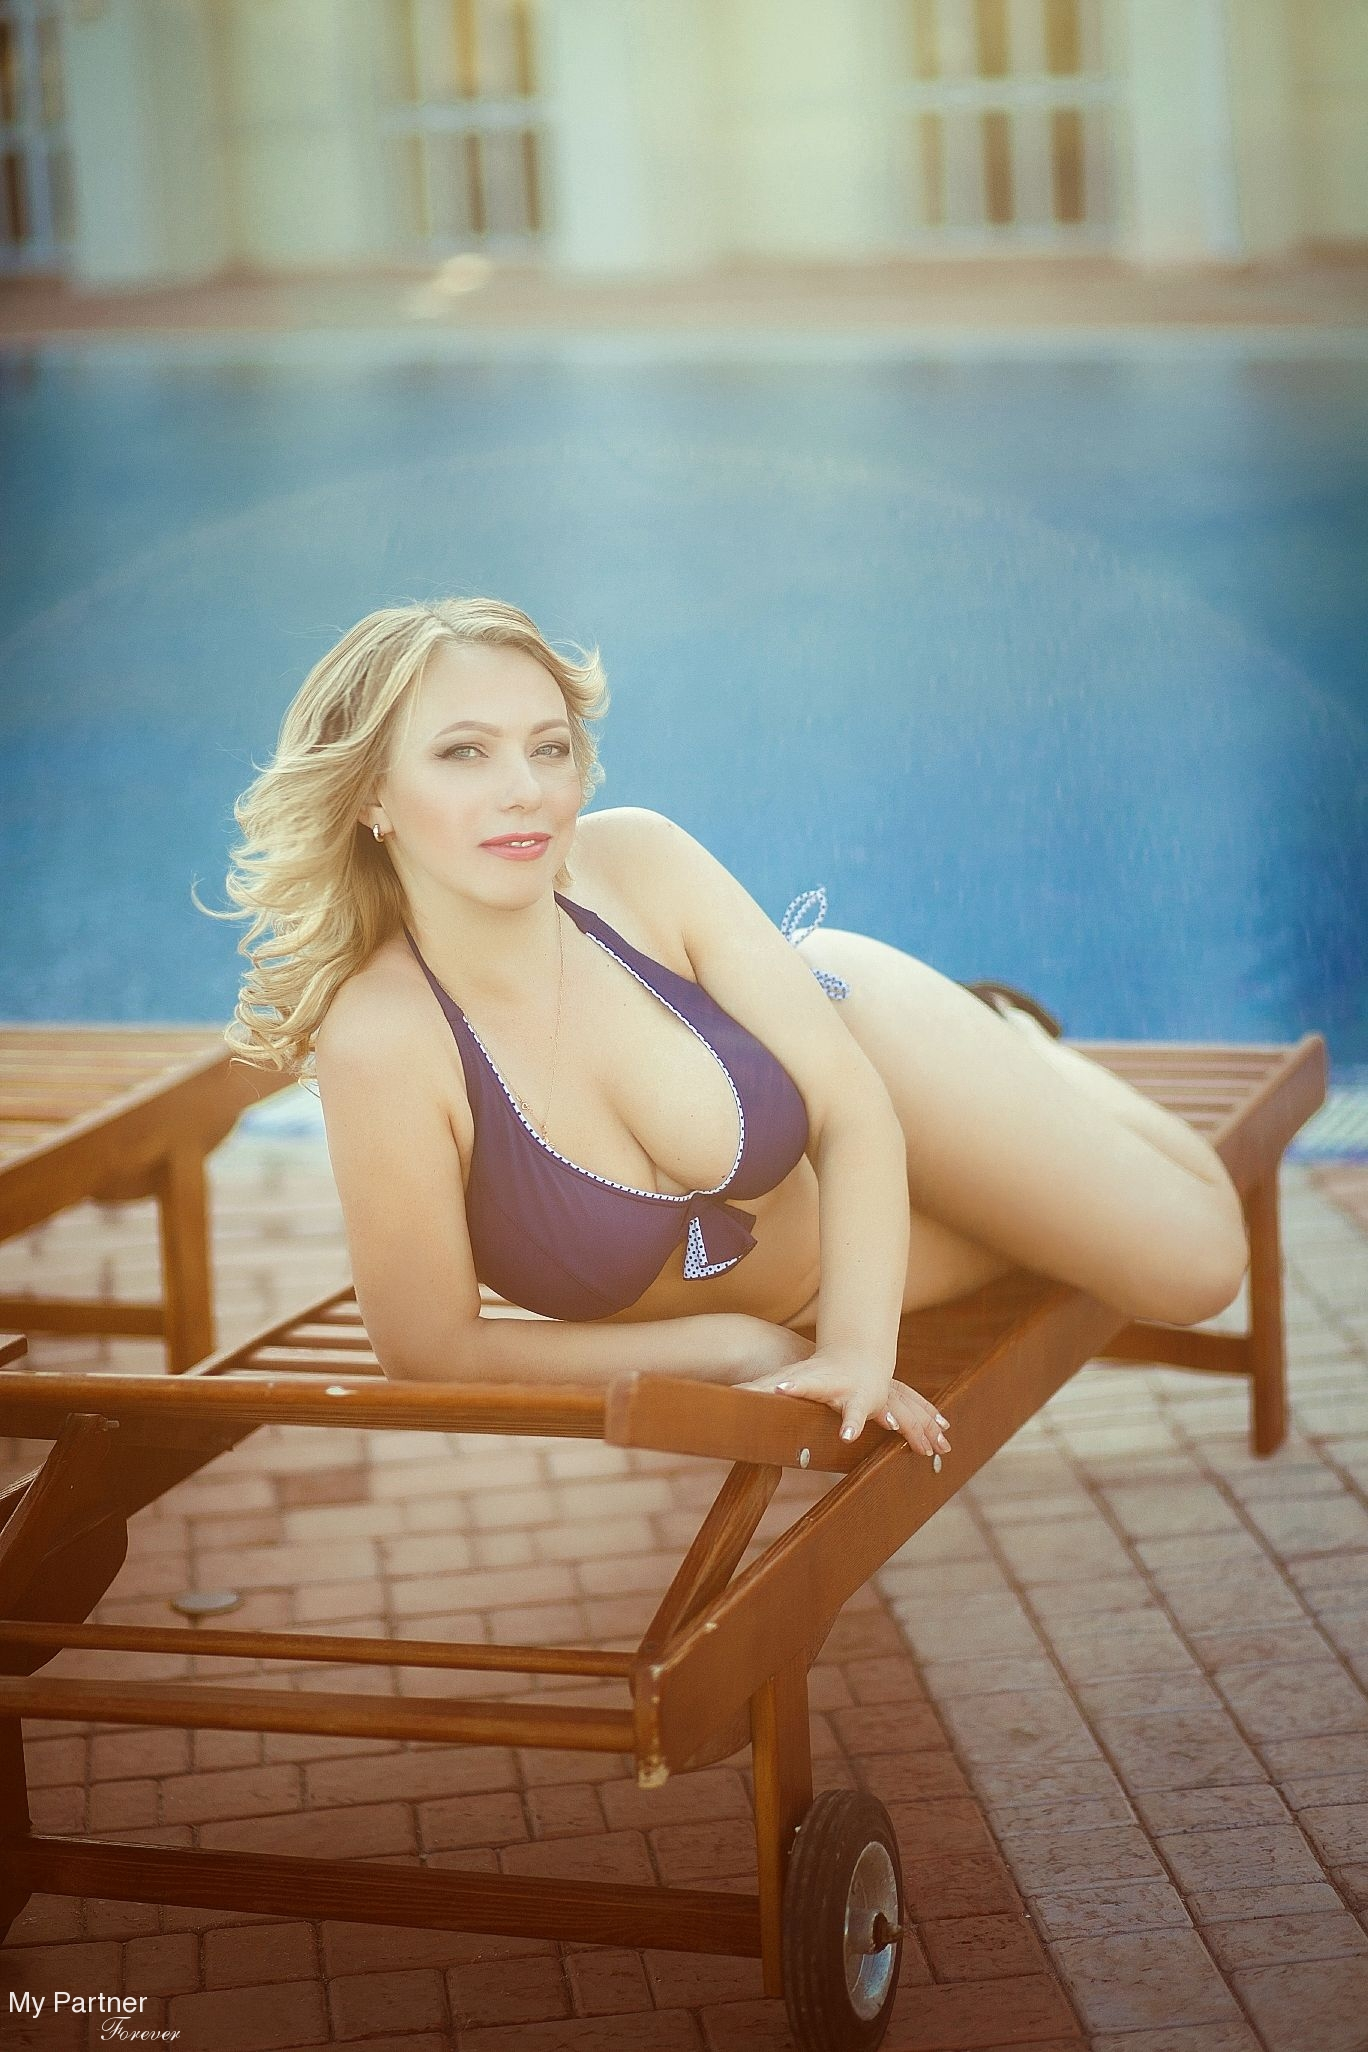 Matchmaking Service to Meet Olga from Mariupol, Ukraine